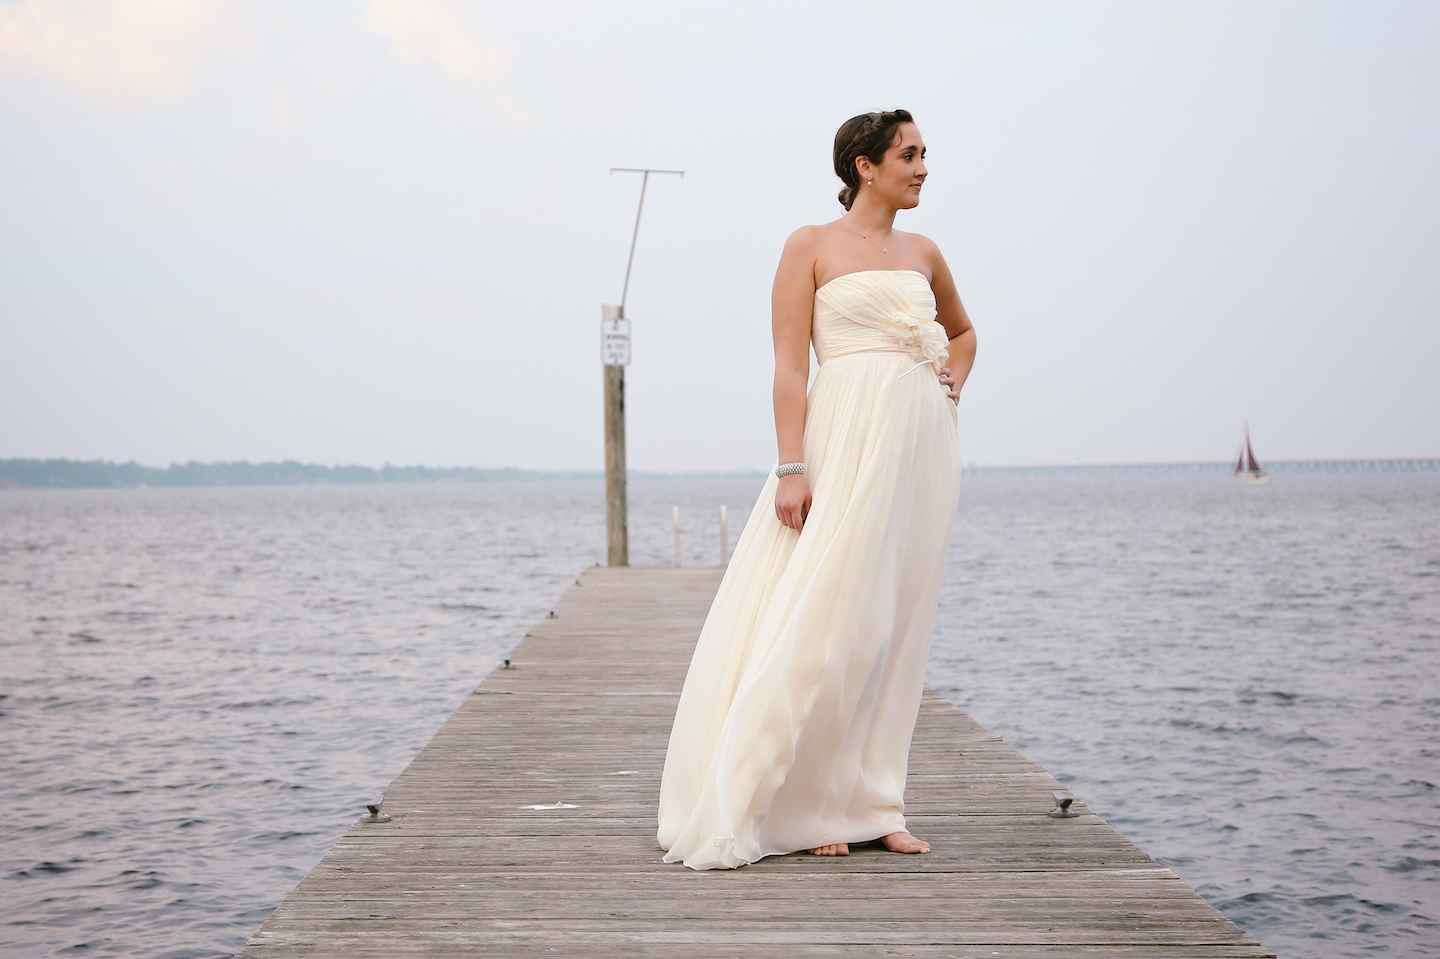 10439Bride on a Boat